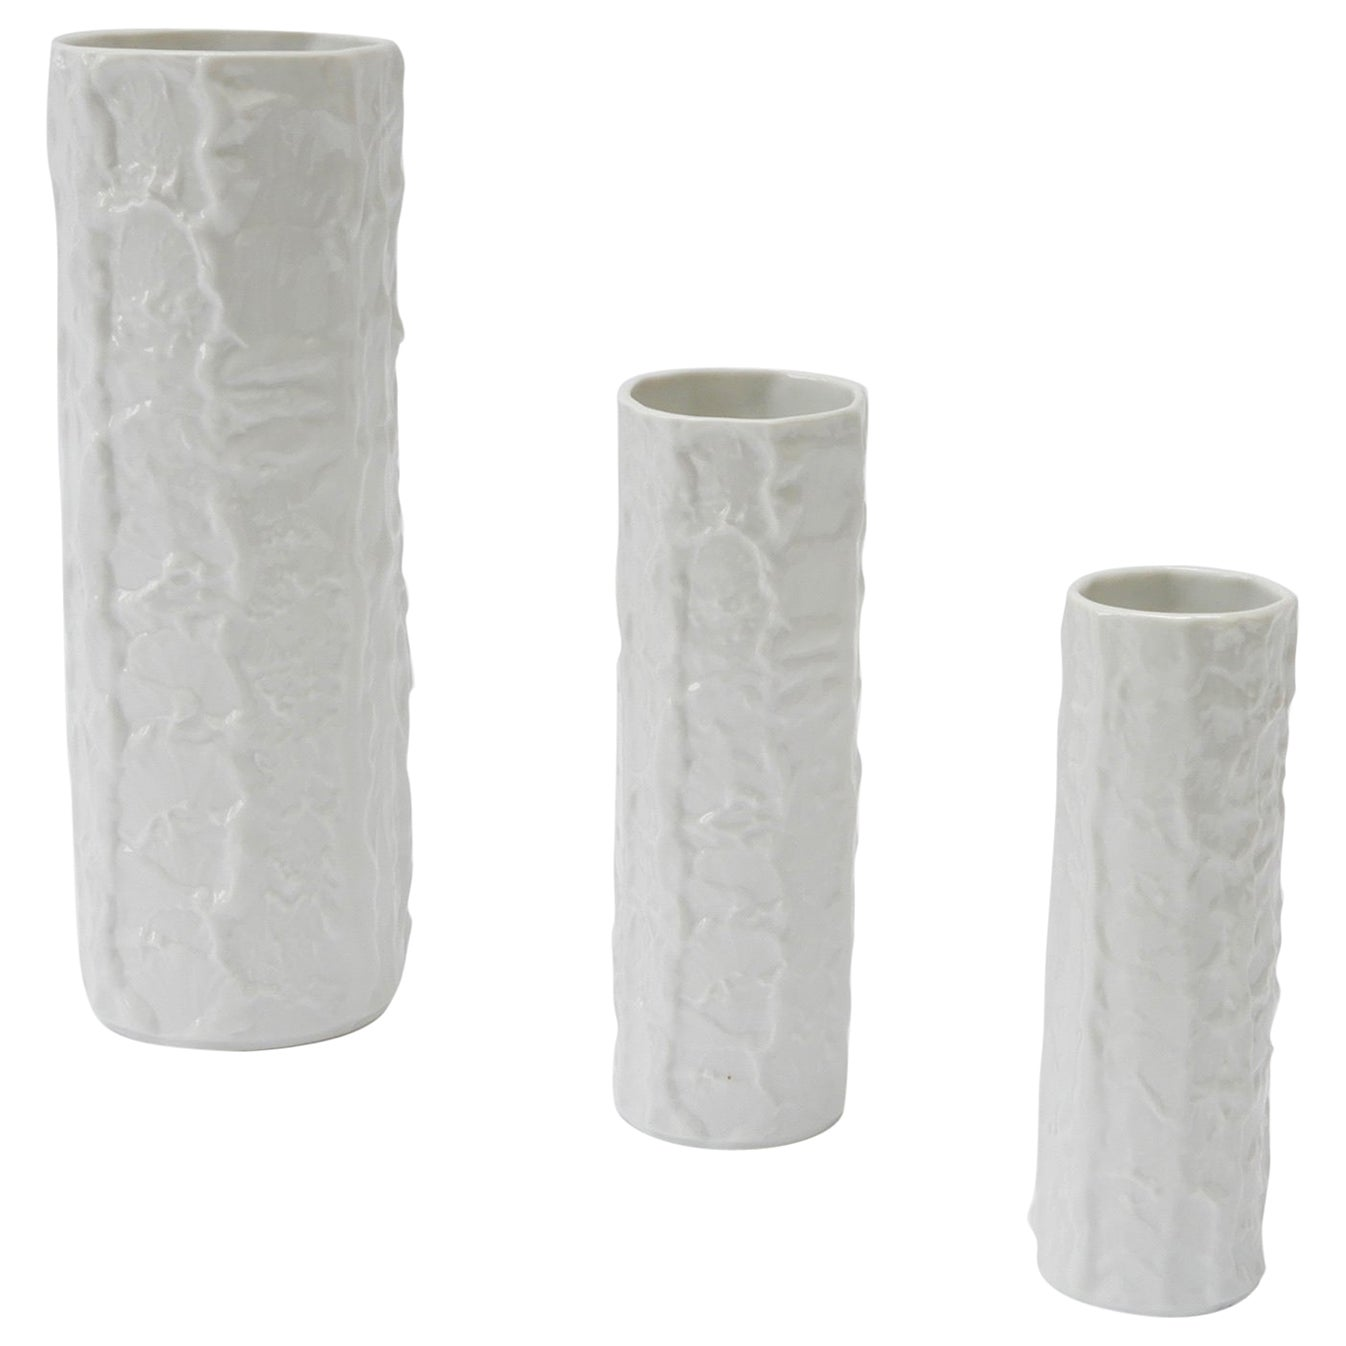 Set of Three German White Ceramic Vases, 1960s